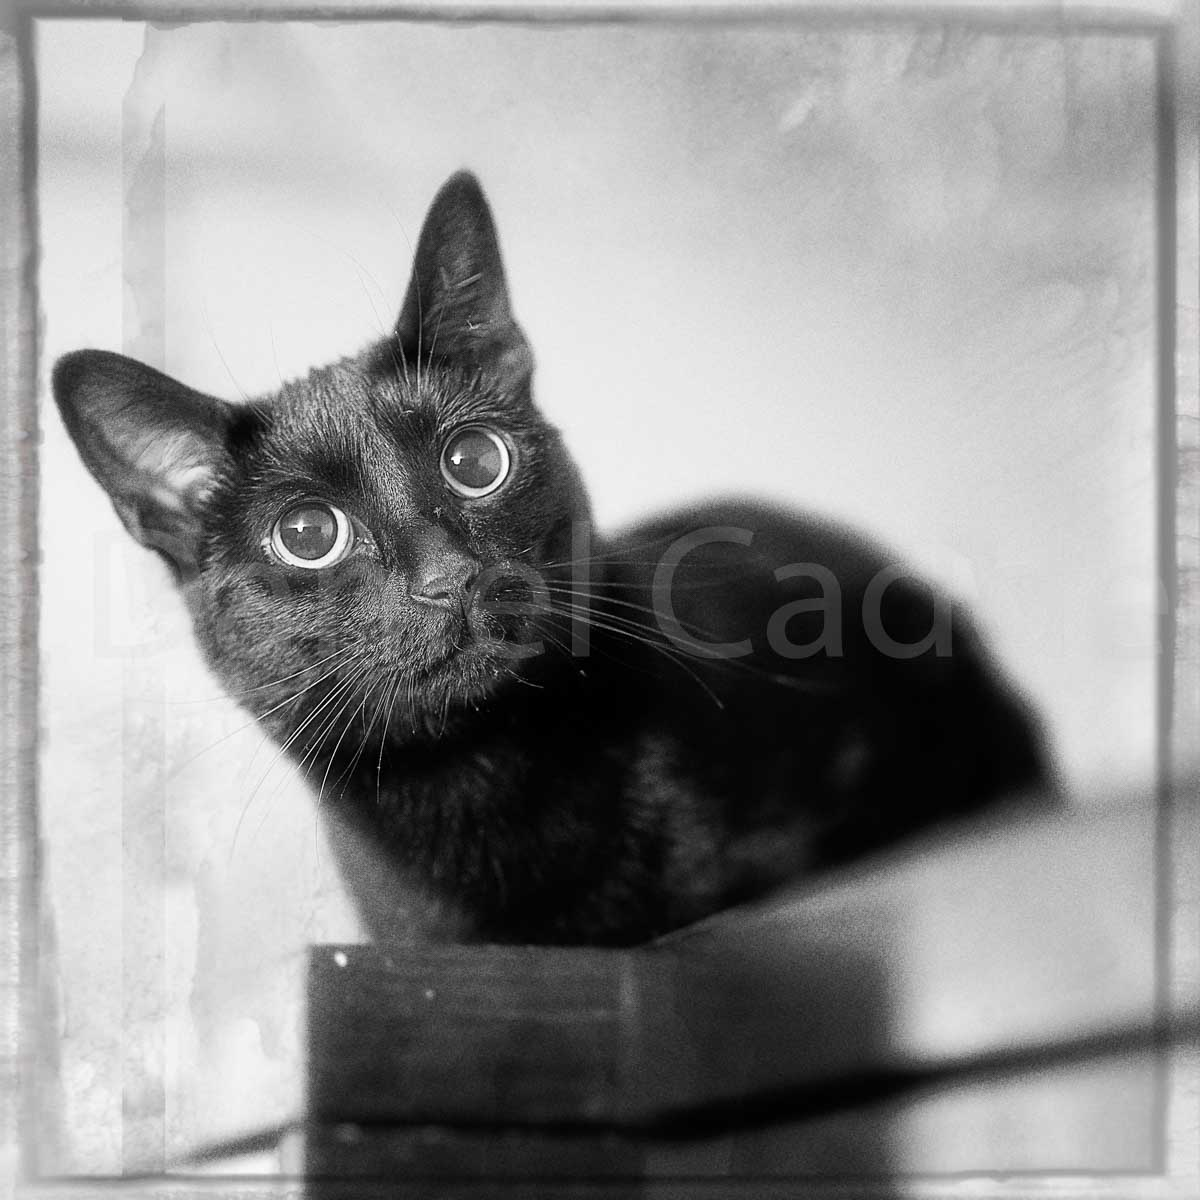 cat photograph with shallow depth of field and monotone processing